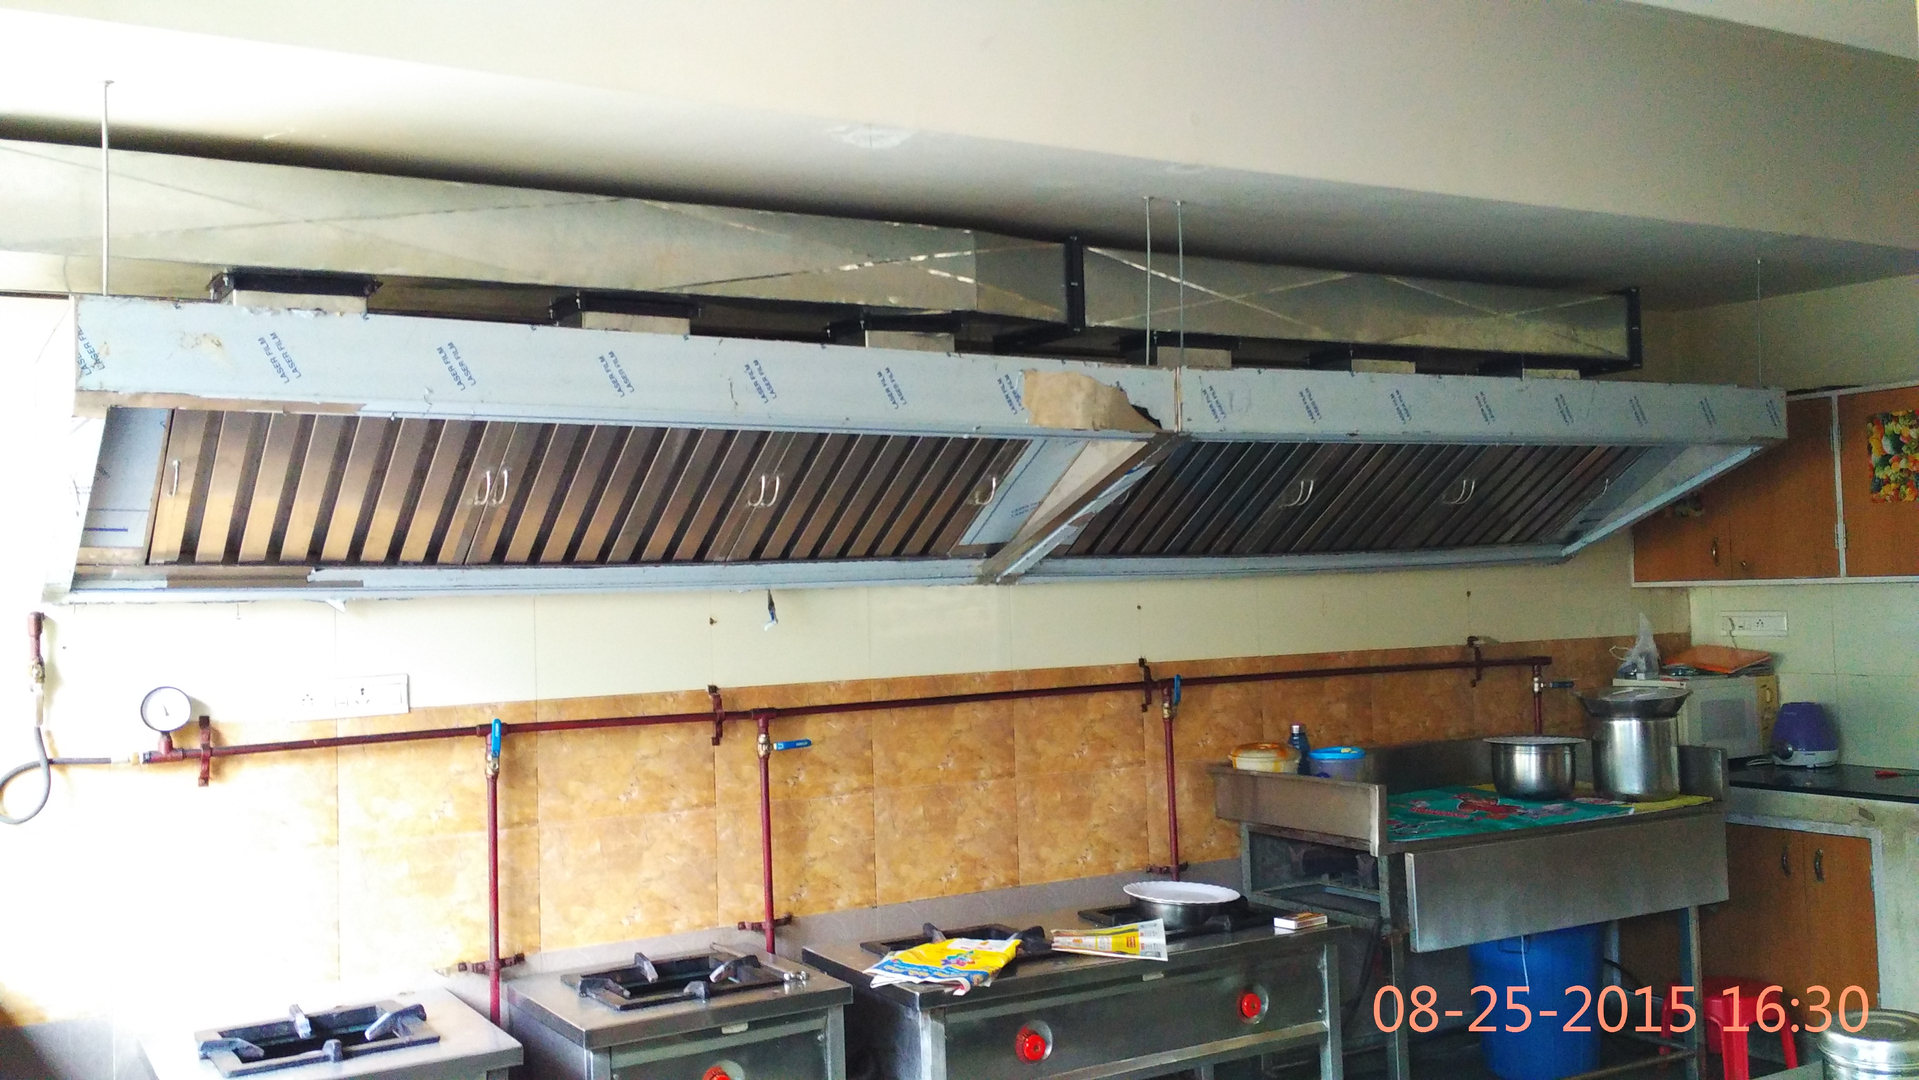 Restaurant Kitchen Ventilation Design kitchen exhaust system, kitchen hood, ducting, hood, manufacturer